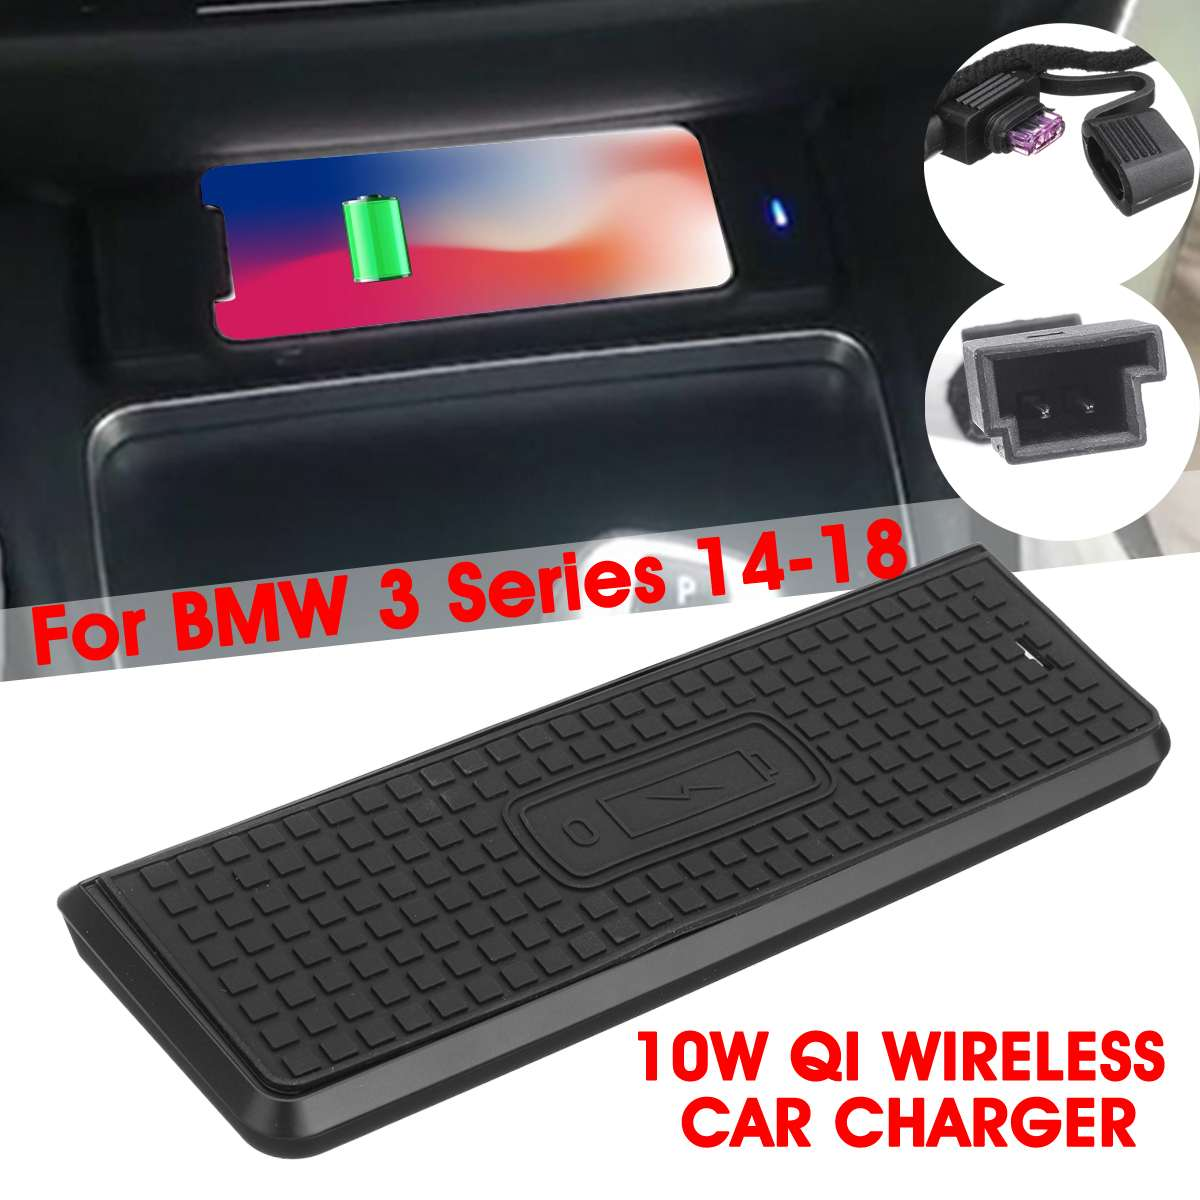 <font><b>For</b></font> <font><b>BMW</b></font> 3 Series 14-18 Car 10W Qi Wireless Fast Charging <font><b>Case</b></font> Charging Panel Car Charger Phone Holder <font><b>For</b></font> <font><b>iPhone</b></font> <font><b>8</b></font>/X/XSmax image